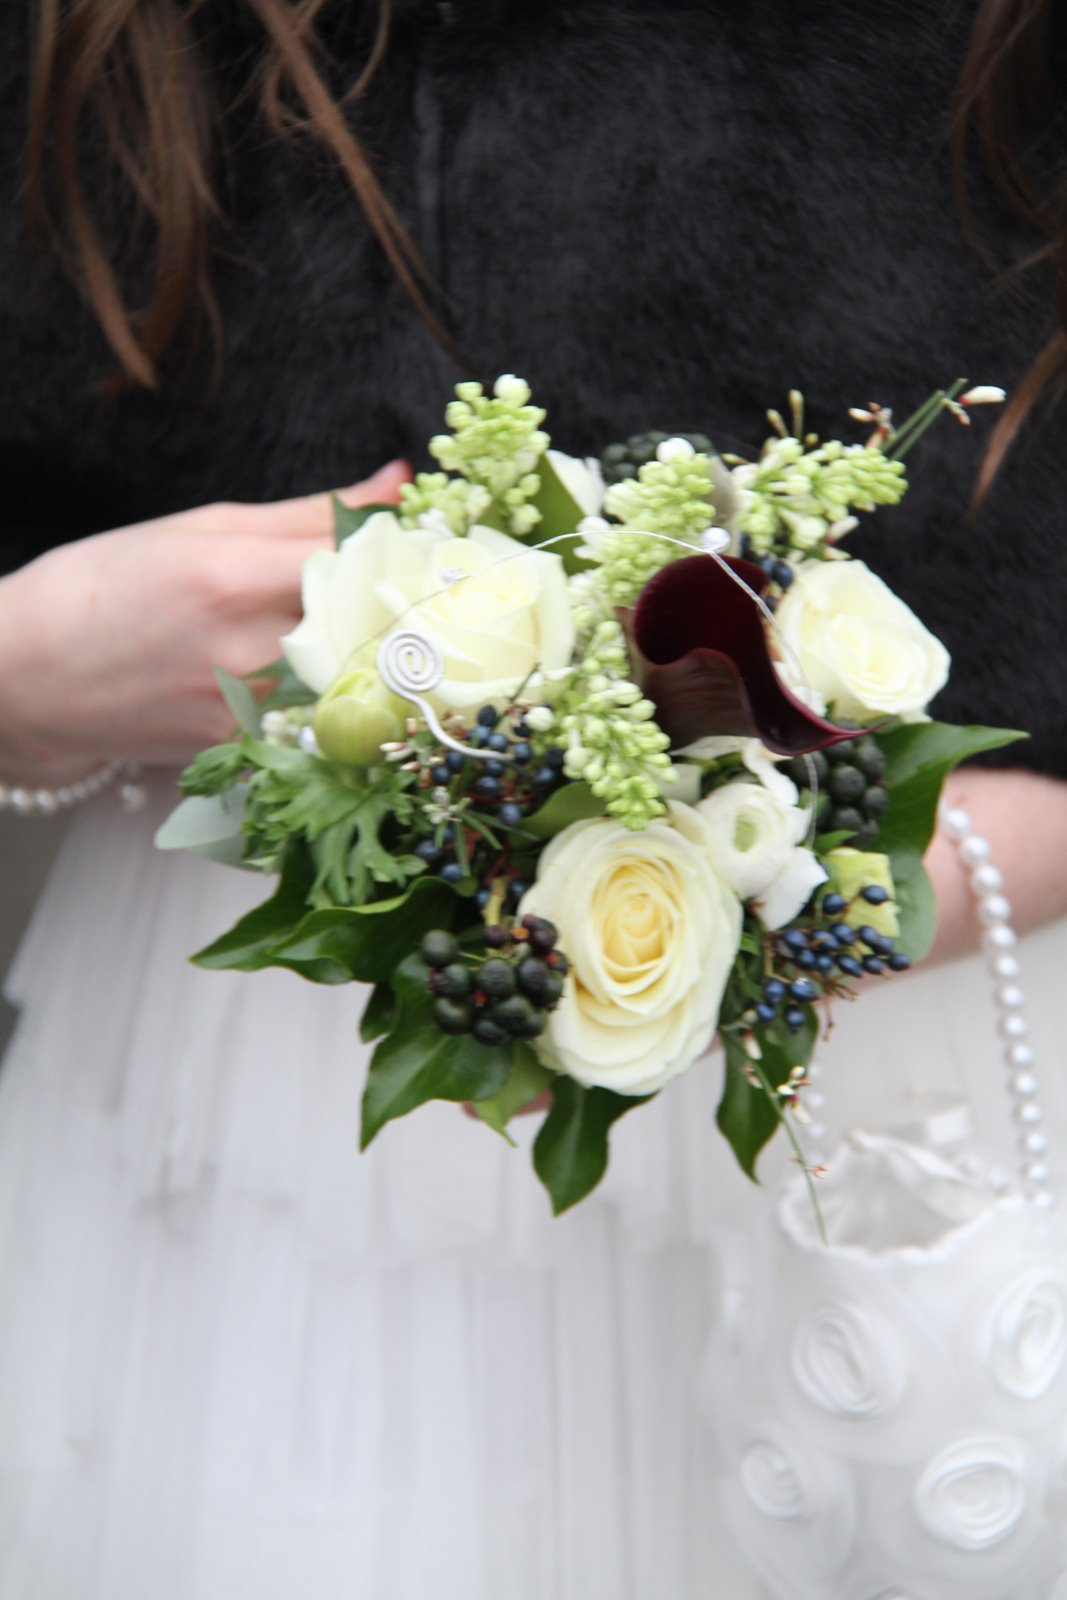 Flower design beautiful bridesmaids bouquets black white flower black and white posies perfect for little flower girls paper whites roses anemones and white lilac are combined with black calla lilies and black izmirmasajfo